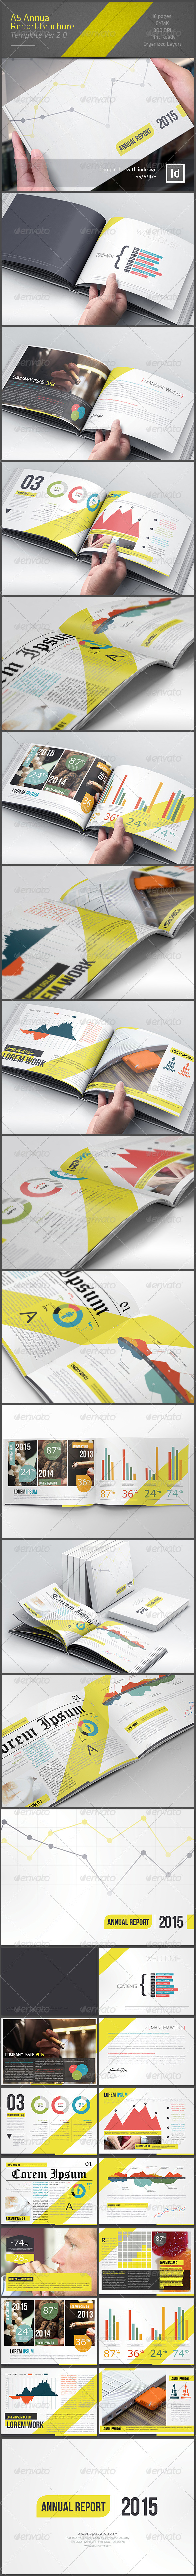 GraphicRiver A5 Annual Report Brochure Ver 2.0 8078027